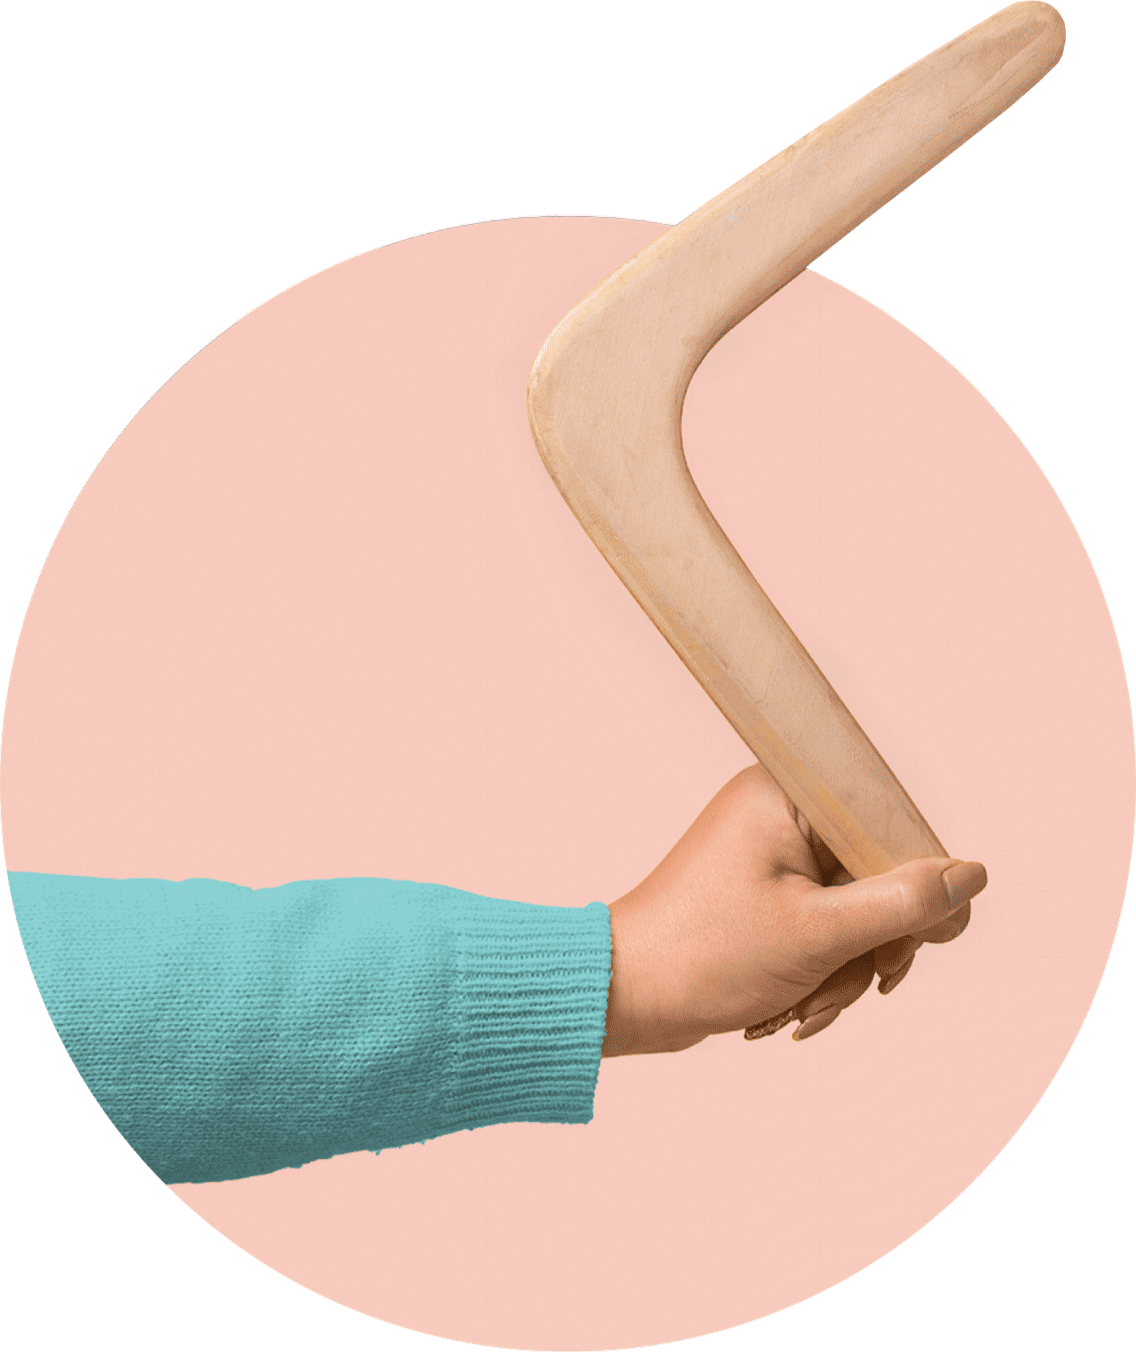 A woman in a pale green sweater holds a wooden boomerang.